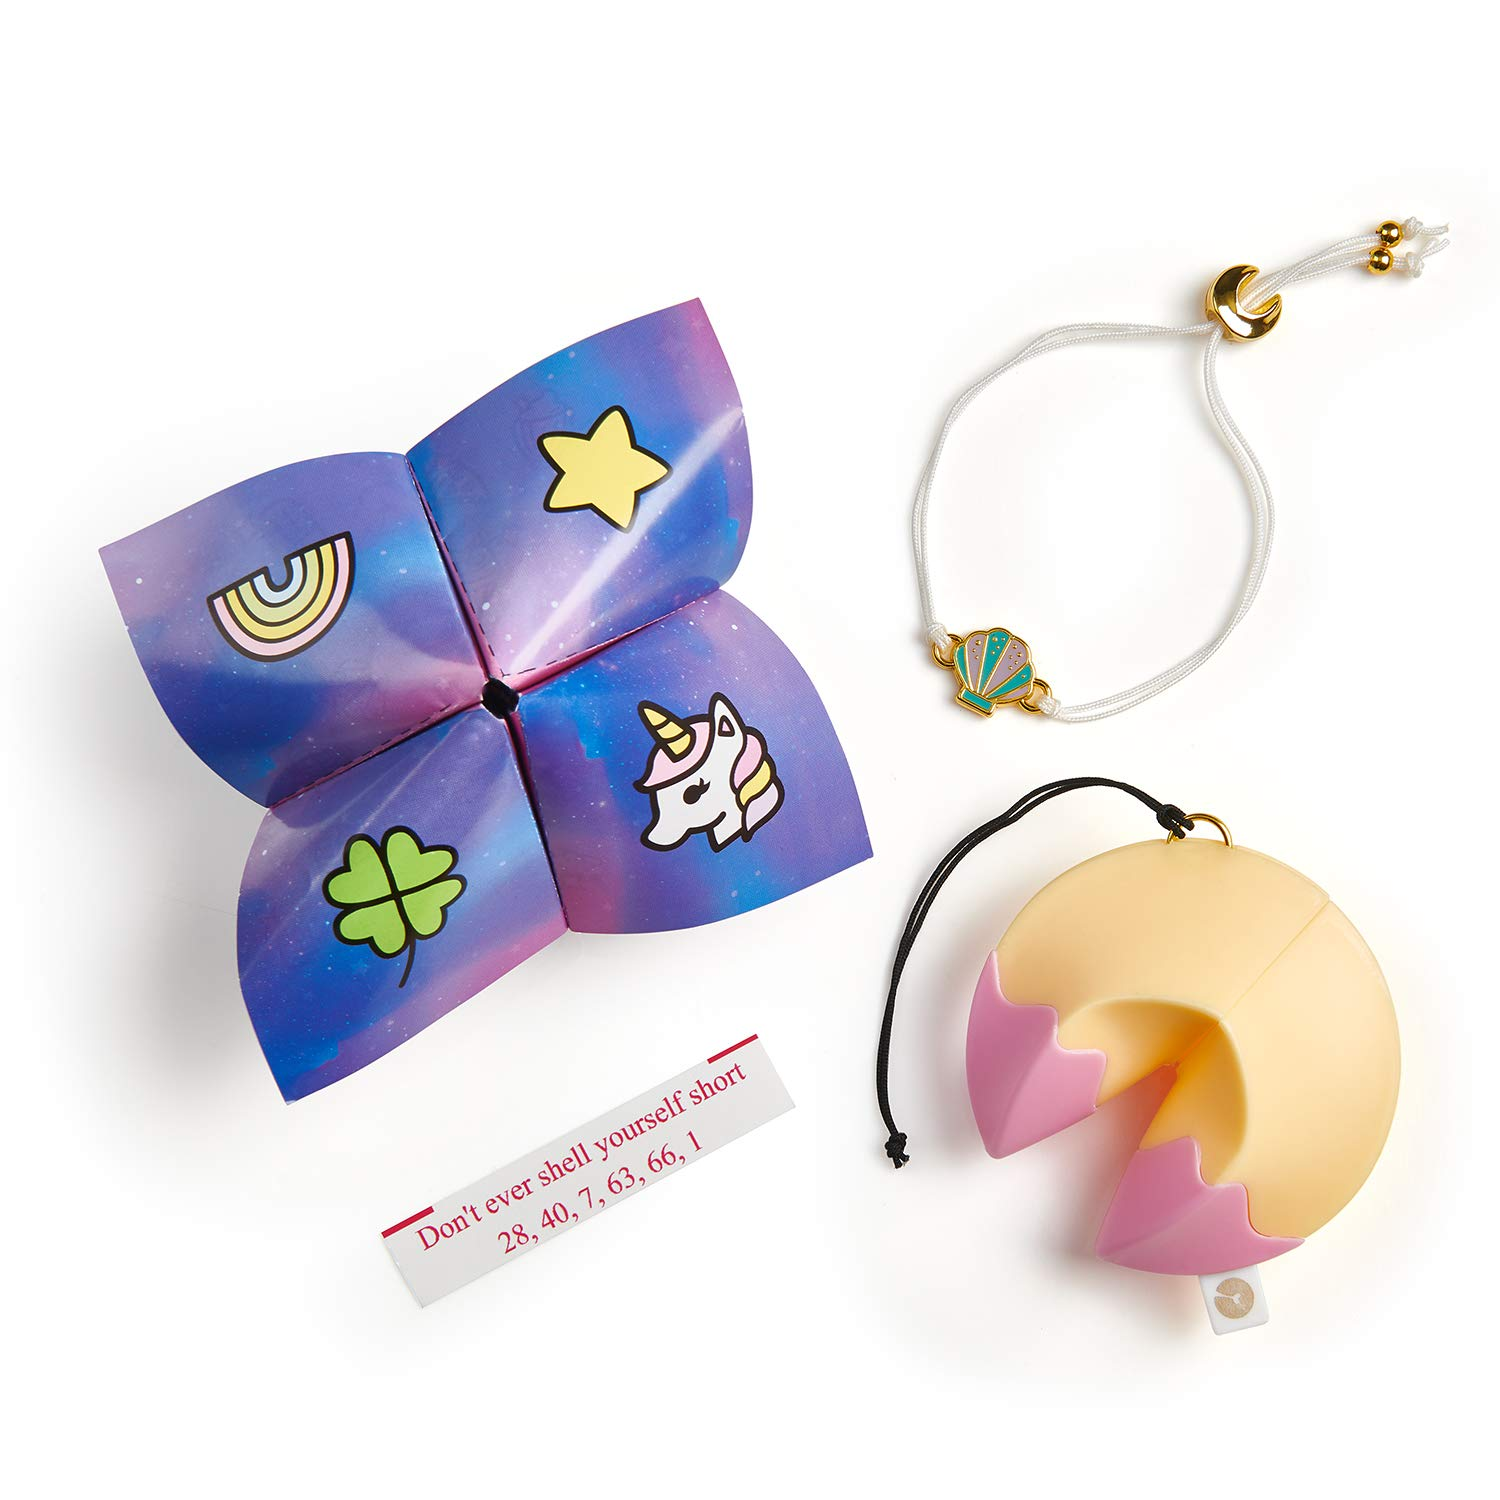 4a8de02261d4a WowWee Lucky Fortune Blind Collectible Bracelets - 4 Pack Take-Out Box -  Series 1